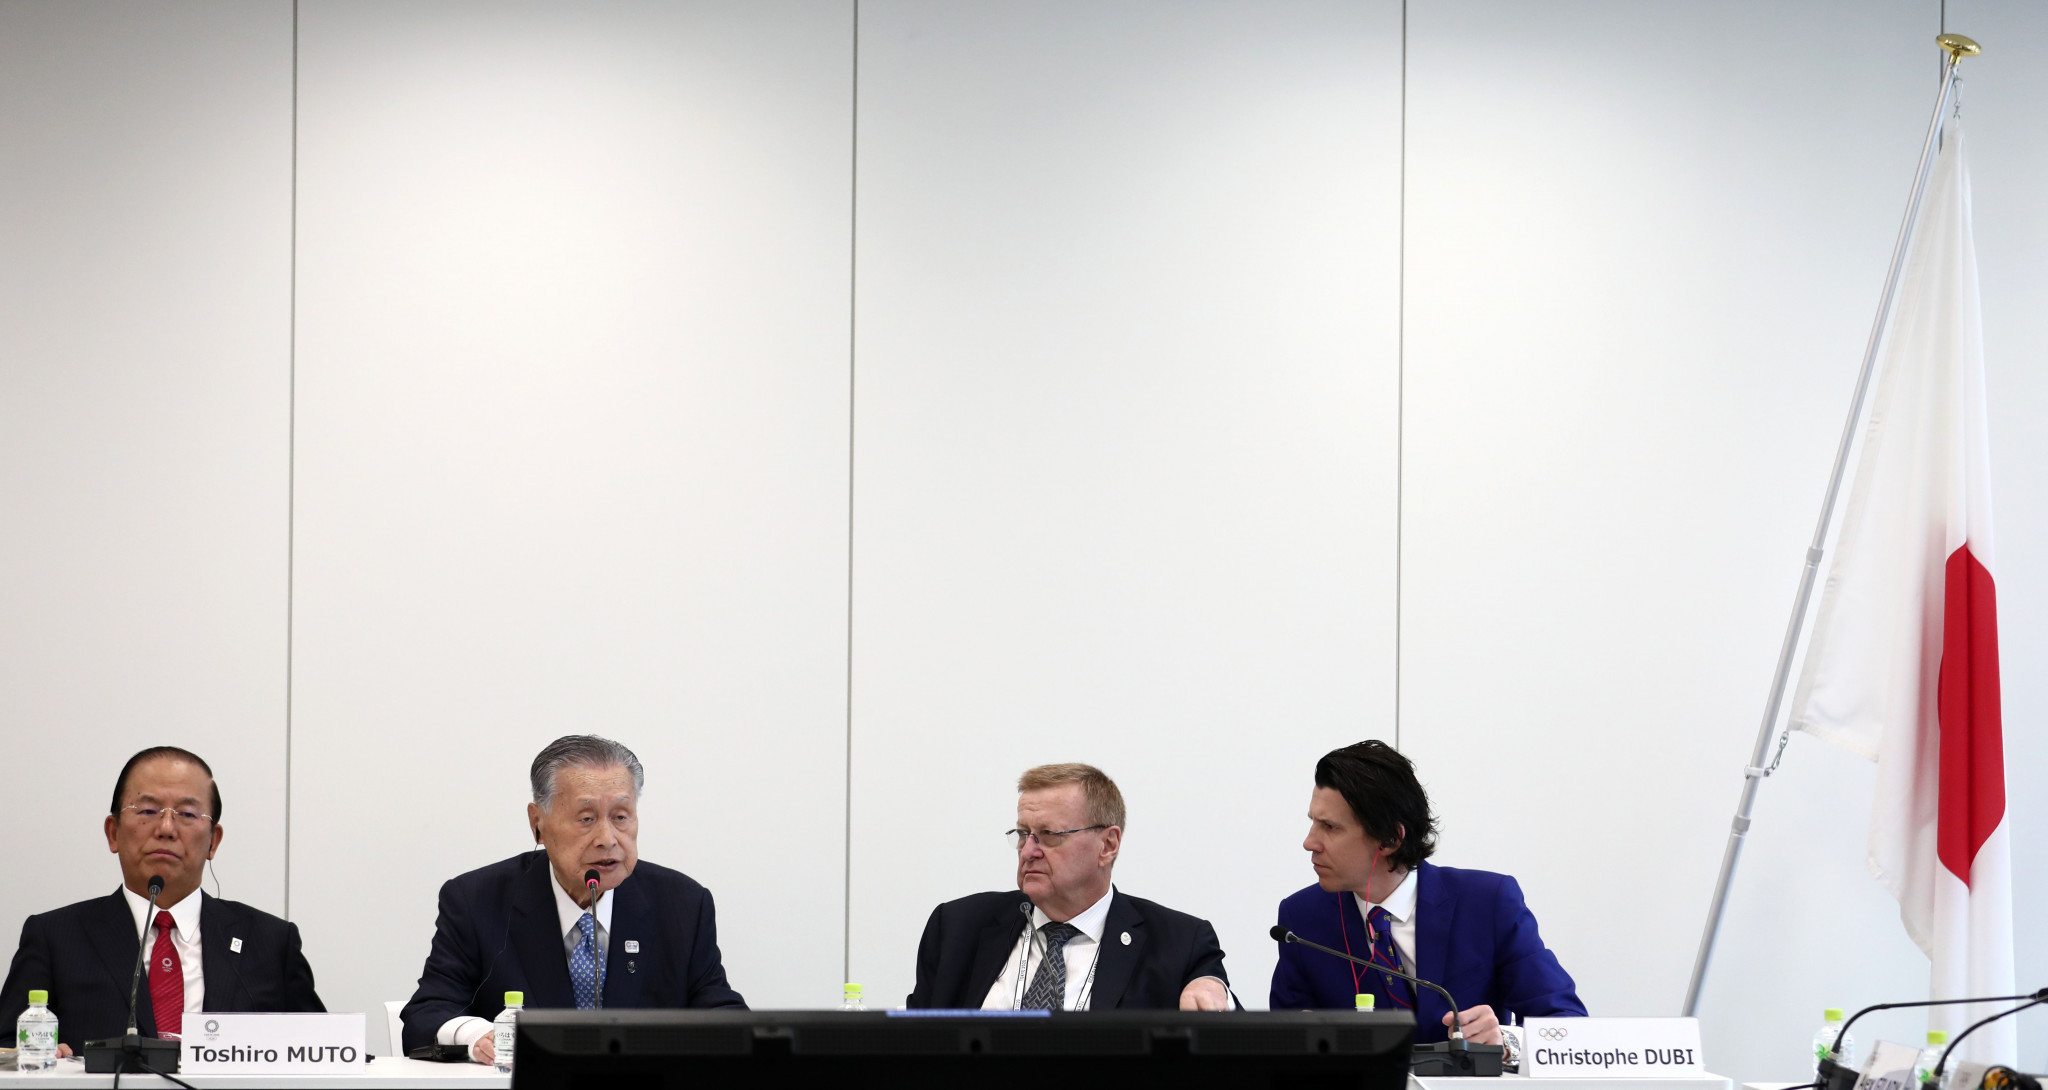 IOC Coordination Commission chairman John Coates delivered a warning that Tokyo 2020 need to address concerns of International Federations and National Olympic Committees during the opening of the Project Review ©Getty Images